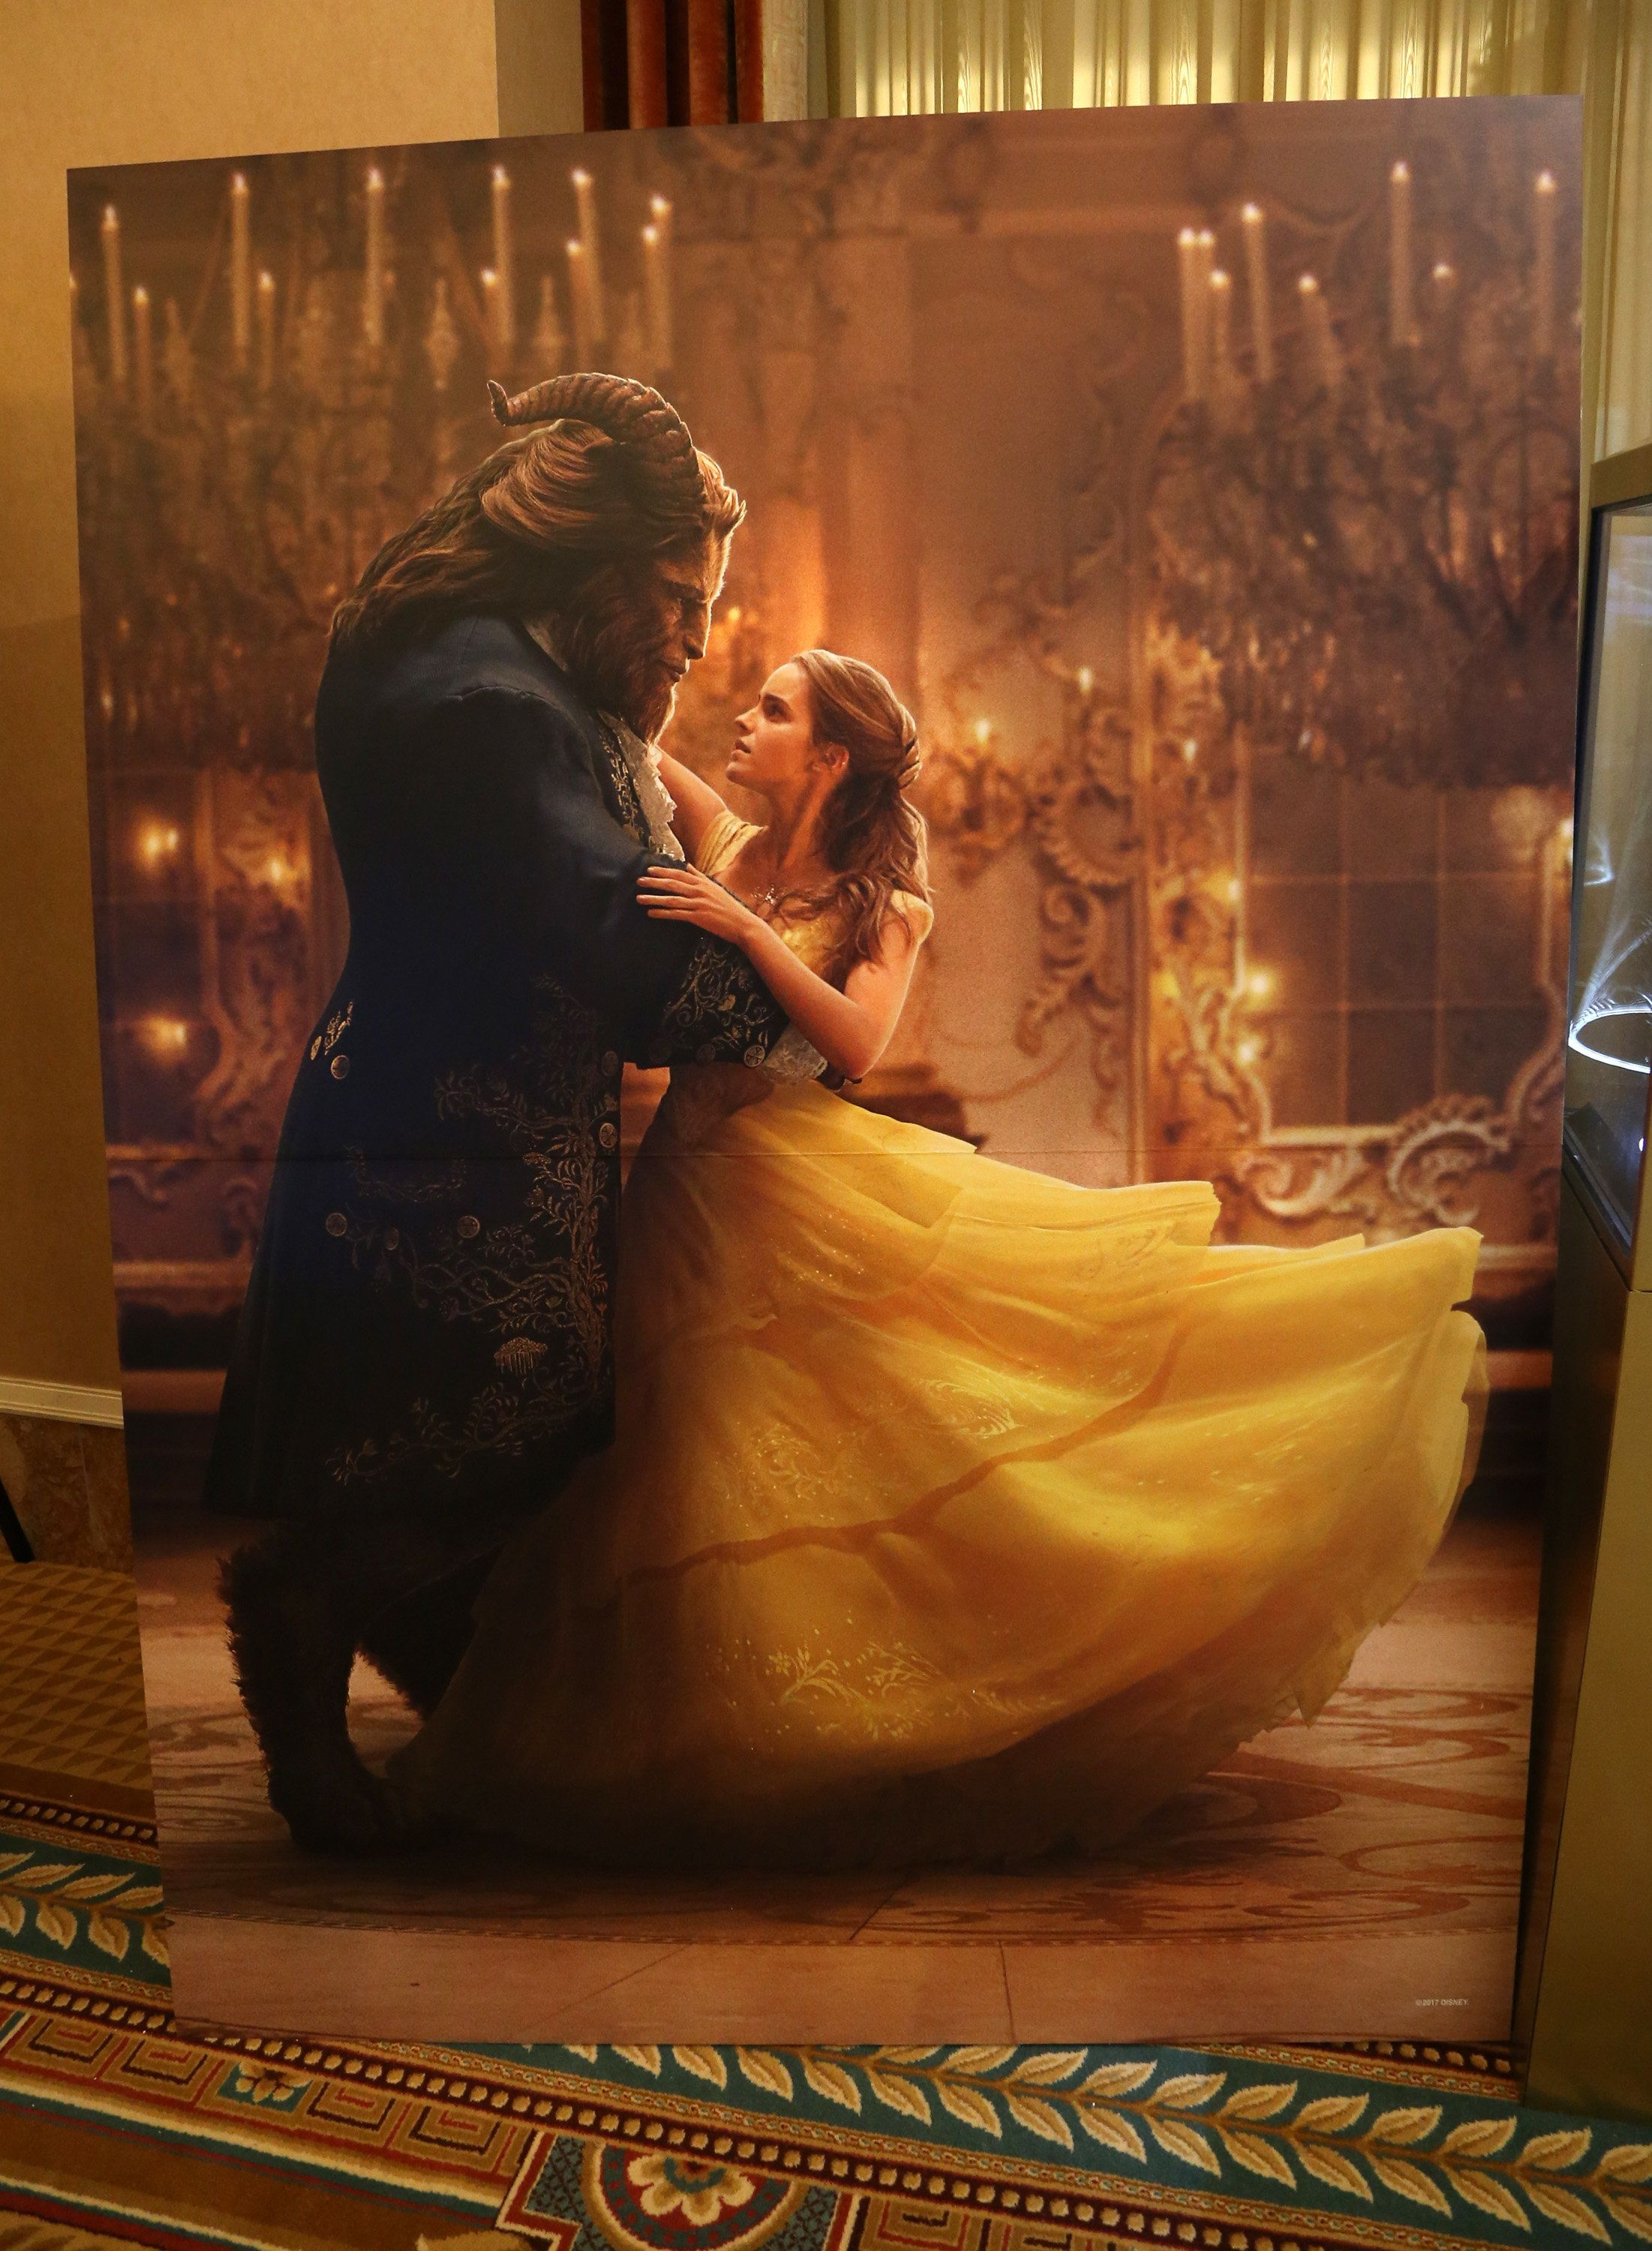 LAS VEGAS, NV - MARCH 27:  A backdrop from the movie  'Beauty and the Beast' is displayed for auction during CinemaCon at Caesars Palace on March 27, 2017 in Las Vegas, United States.  (Photo by Gabe Ginsberg/WireImage)